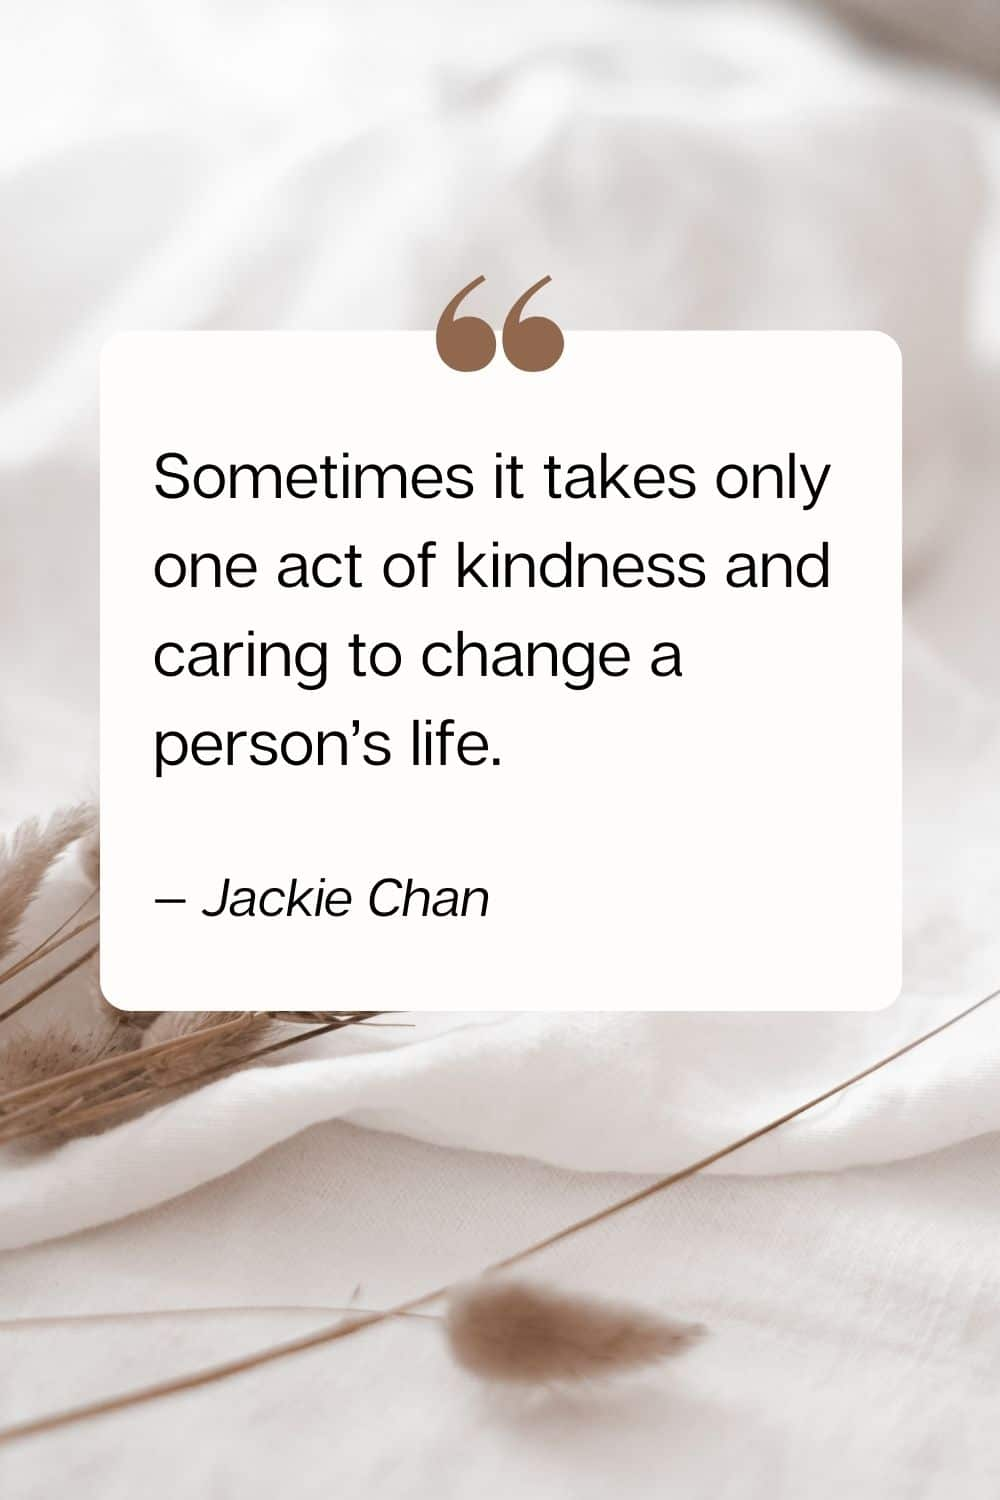 quote - Sometimes it takes only one act of kindness and caring to change a person's life. — Jackie Chan